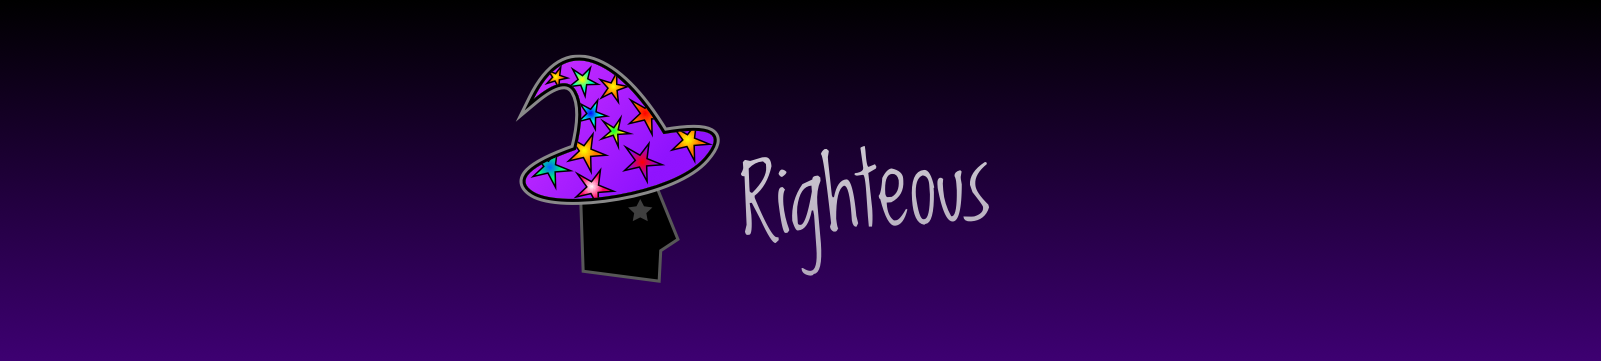 Righteous Title Logo